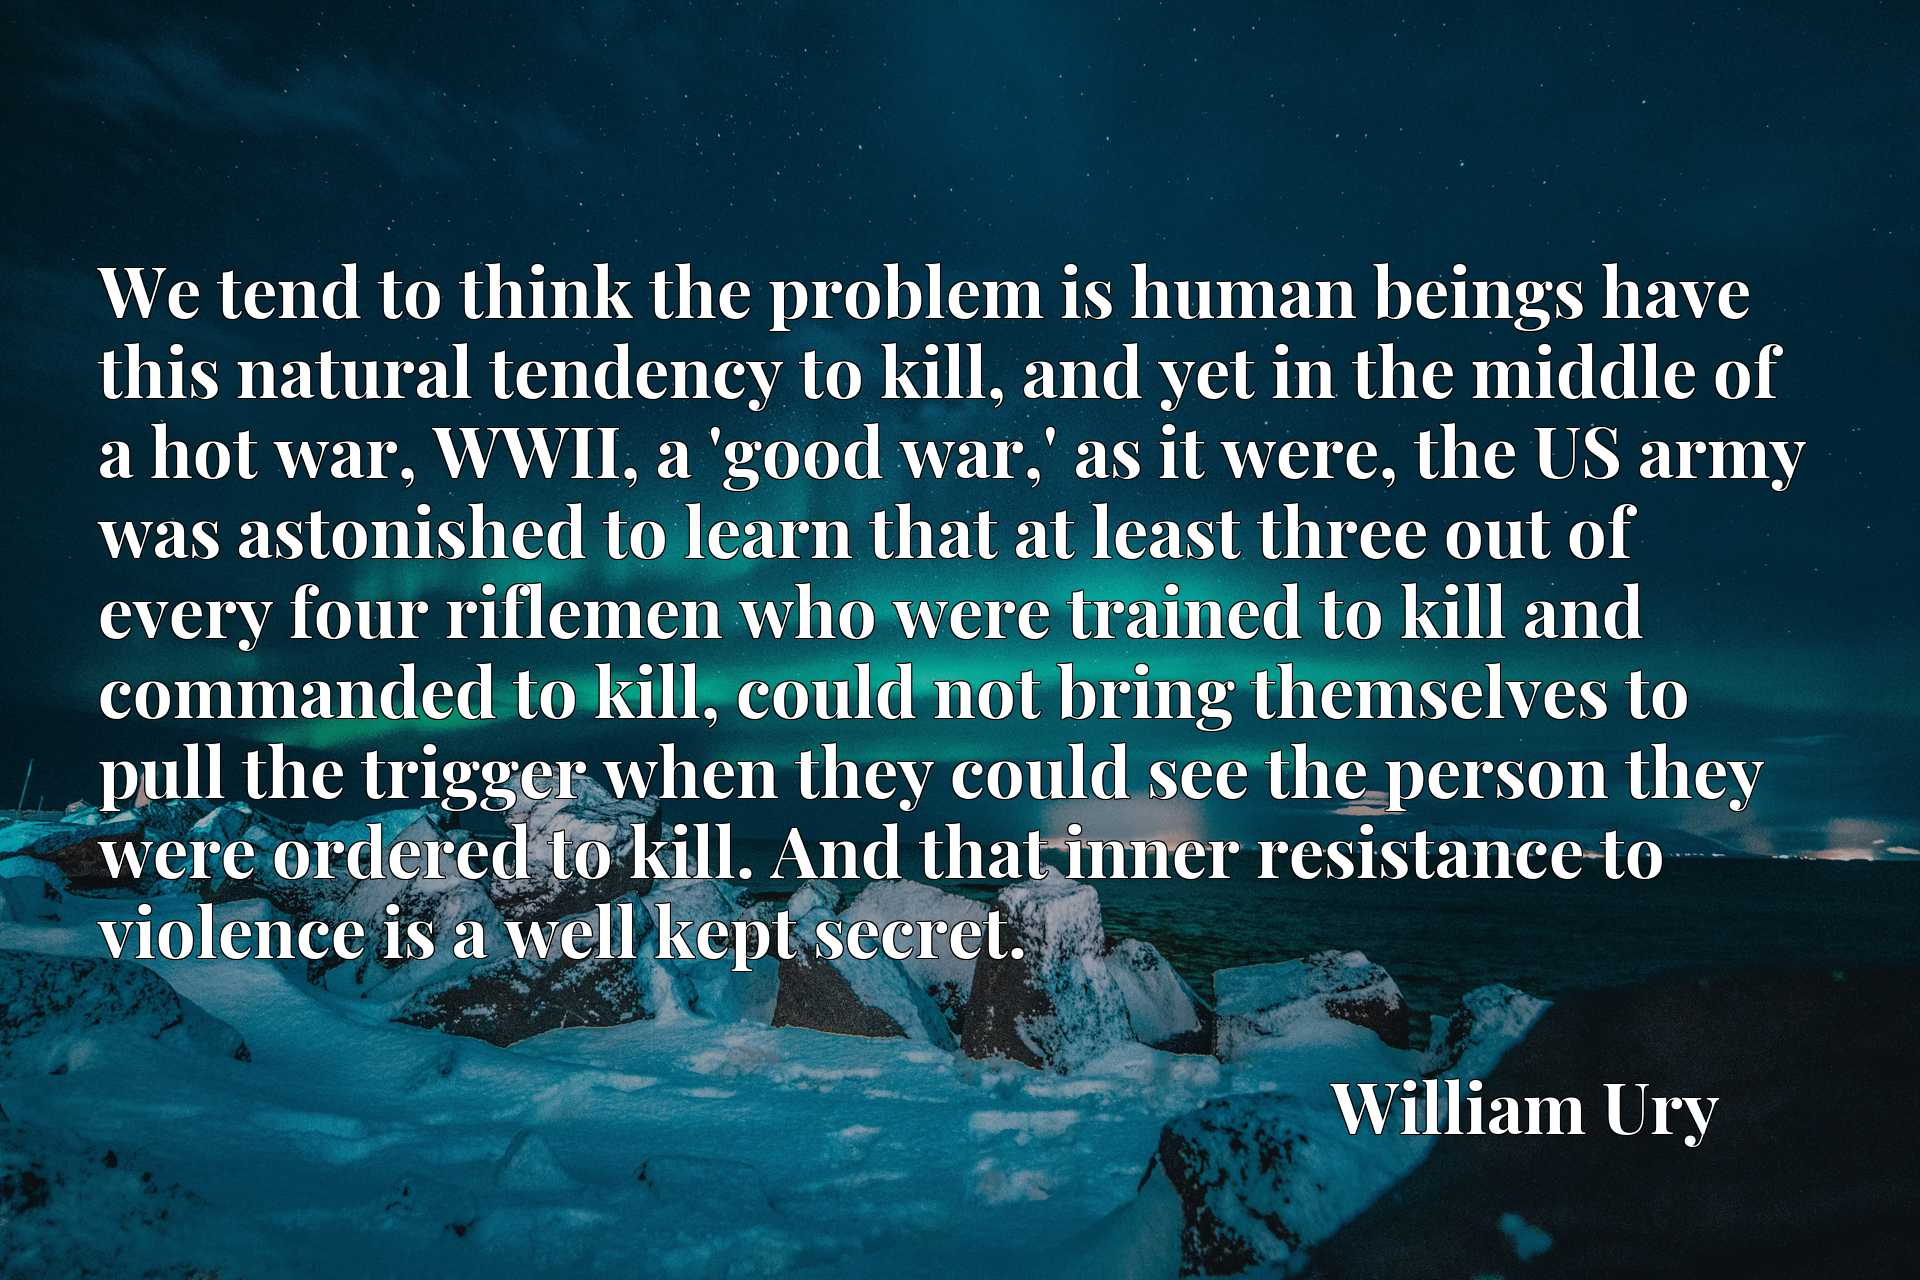 We tend to think the problem is human beings have this natural tendency to kill, and yet in the middle of a hot war, WWII, a 'good war,' as it were, the US army was astonished to learn that at least three out of every four riflemen who were trained to kill and commanded to kill, could not bring themselves to pull the trigger when they could see the person they were ordered to kill. And that inner resistance to violence is a well kept secret.